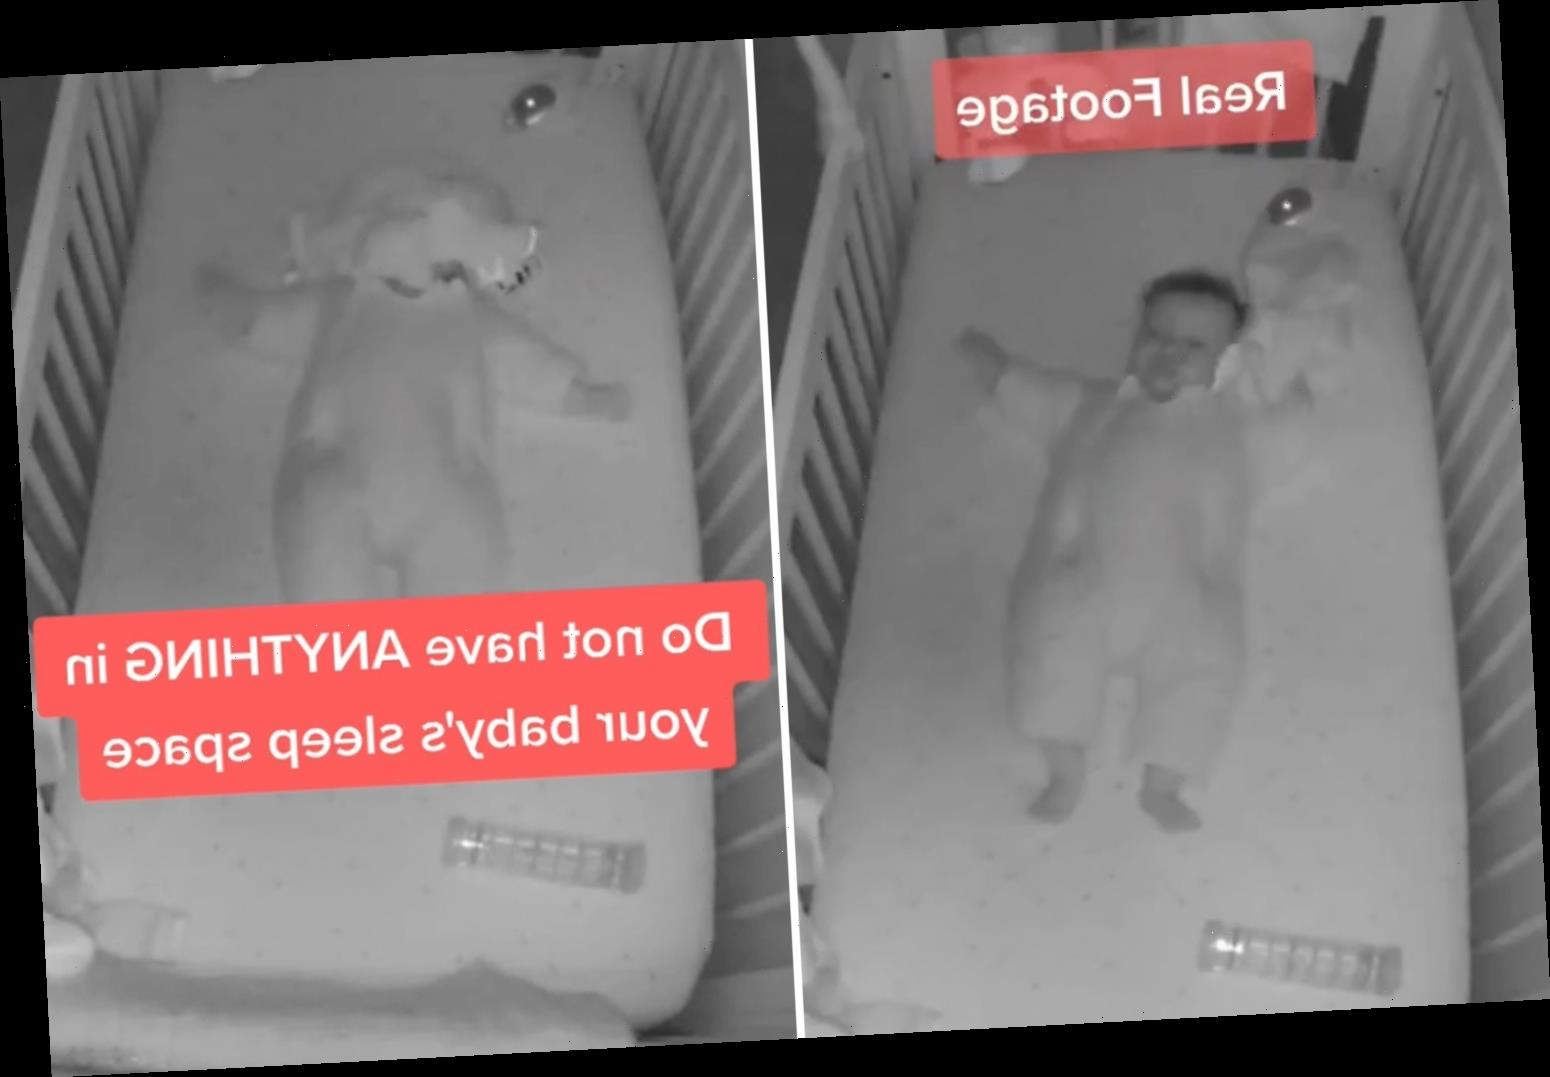 Terrifying moment baby gets tangled in comfort blanket shows why you should NEVER put anything in a cot with your child